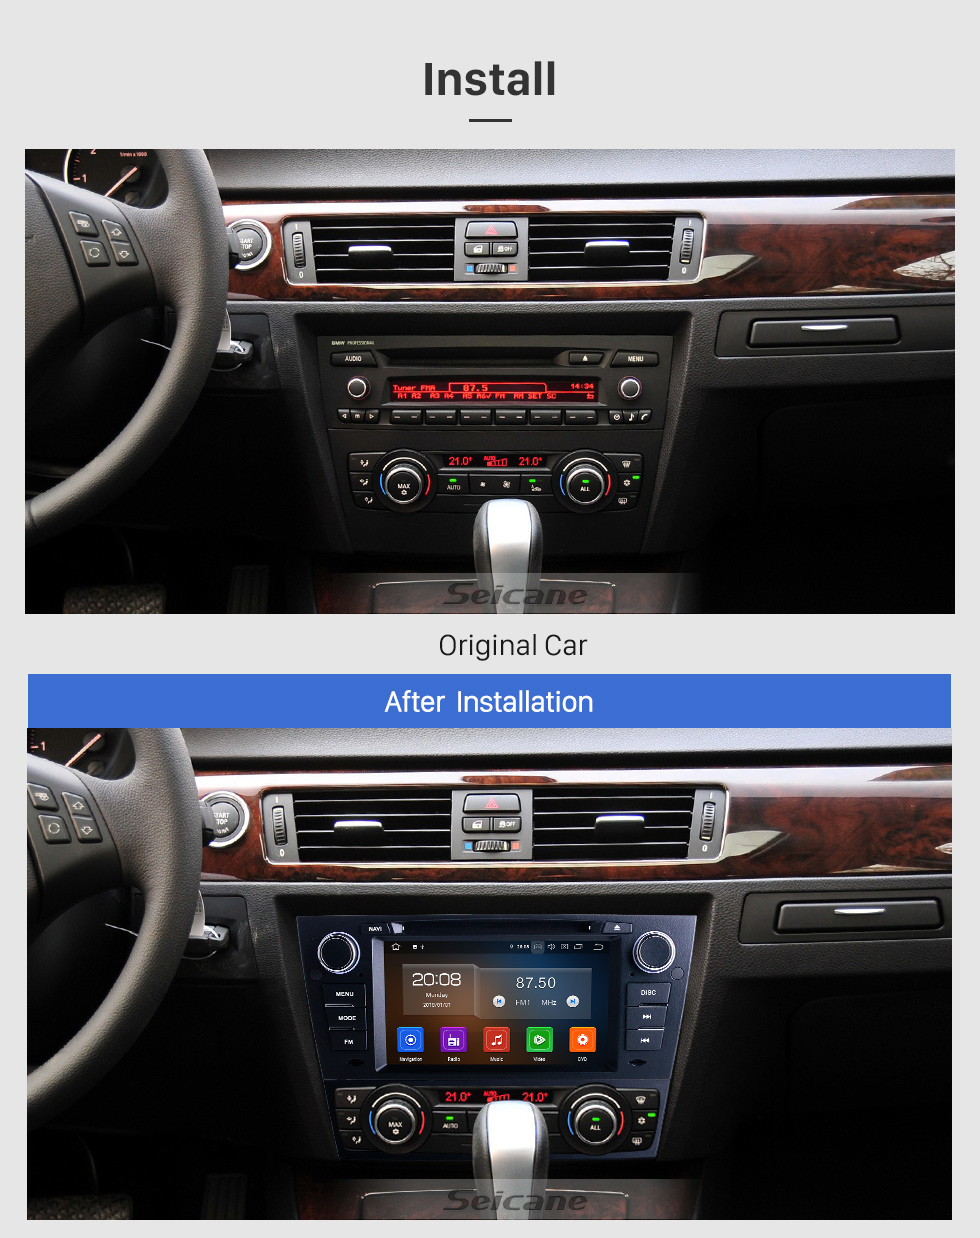 Seicane OEM 7 inch Android 10.0 for 2012 BMW 3 Series E90 Auto/Manual A/C Radio with Bluetooth HD Touchscreen GPS Navigation System Carplay support DVR